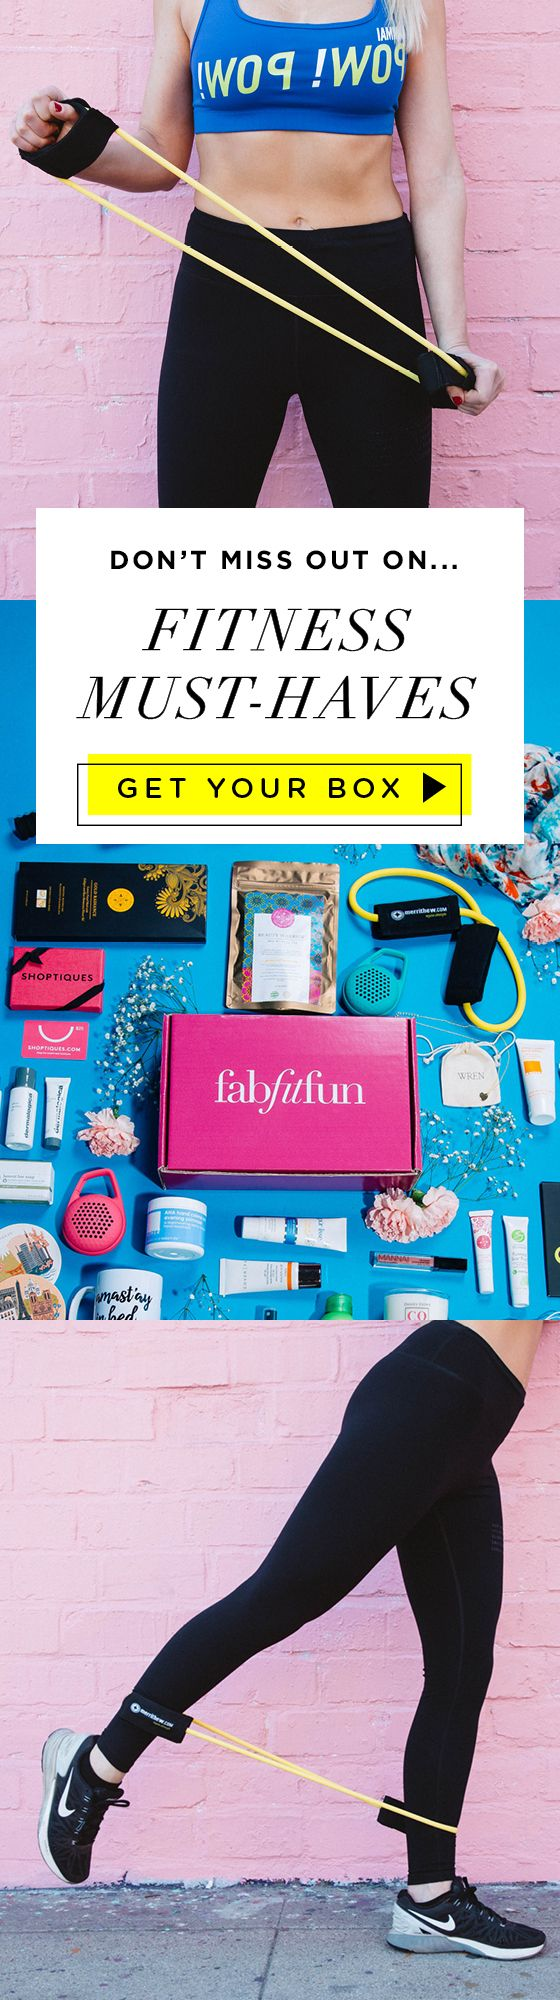 "Put the ""Fit"" in your life with a box of FabFitFun! Treat yourself to one of our seasonal boxes to get $200+ of full-size fitness, beauty, and fashion products. It's everything you need to help you feel and look your best. Only $13.33 a month with code FITNESS"